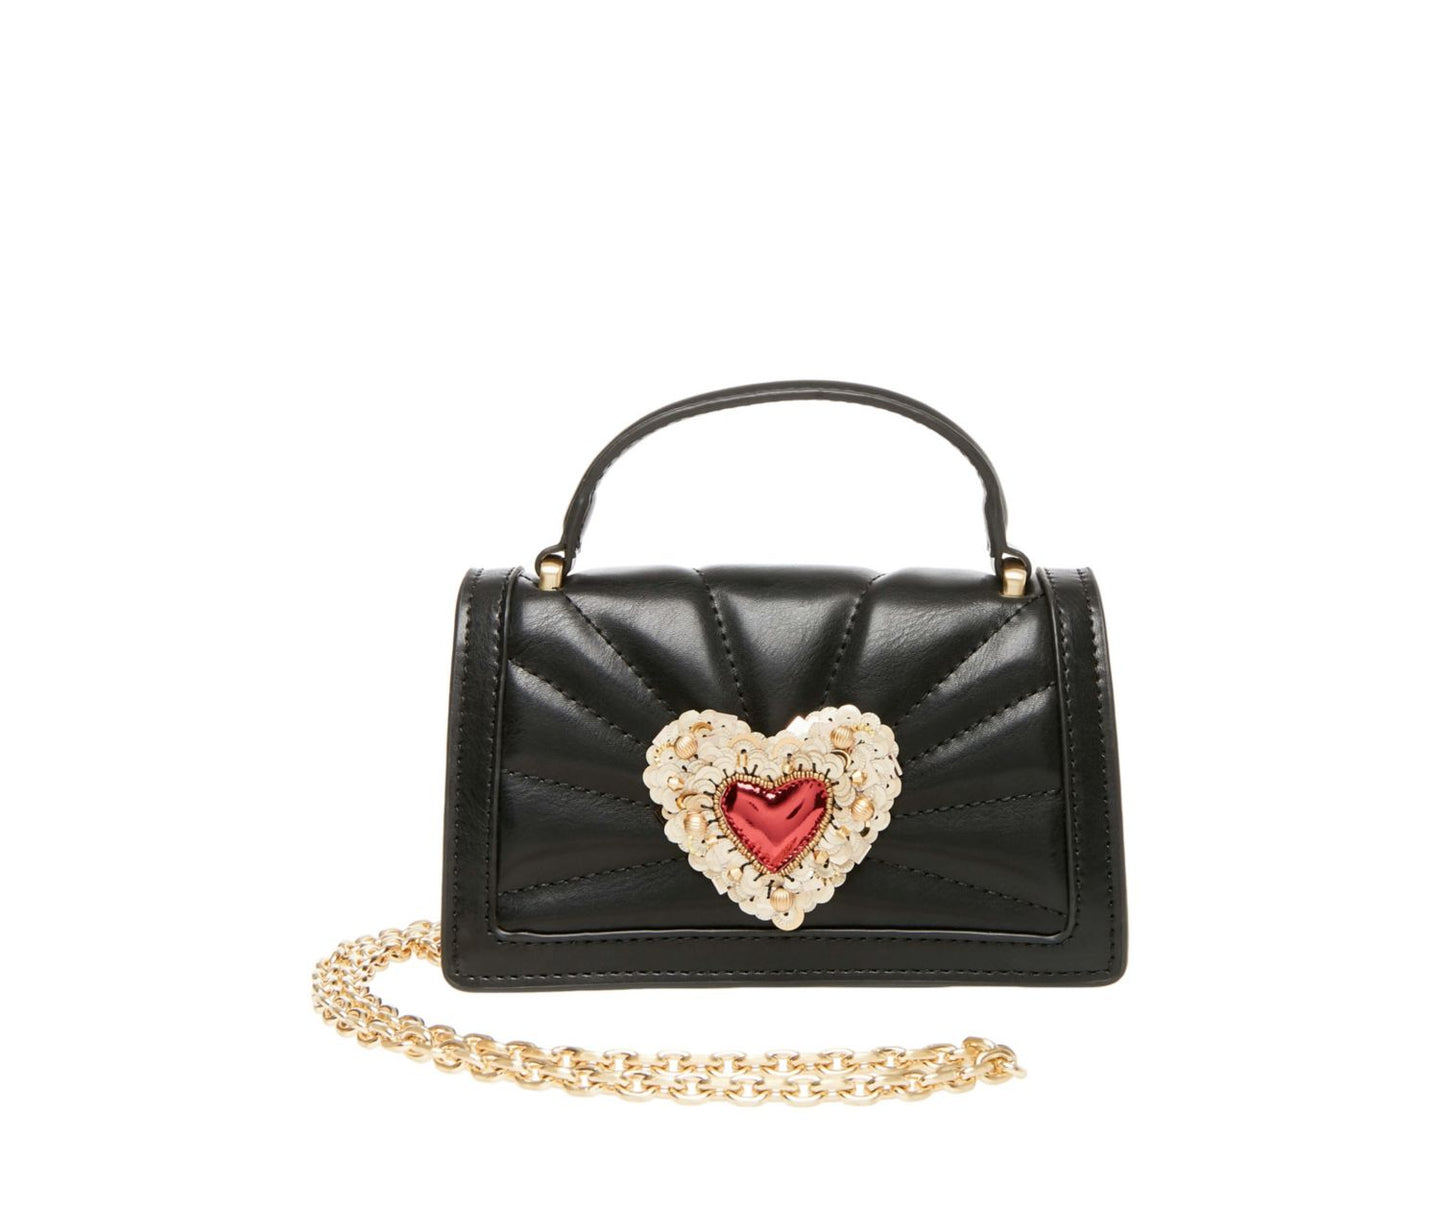 HEARTS AFIRE CROSSBODY BLACK - HANDBAGS - Betsey Johnson